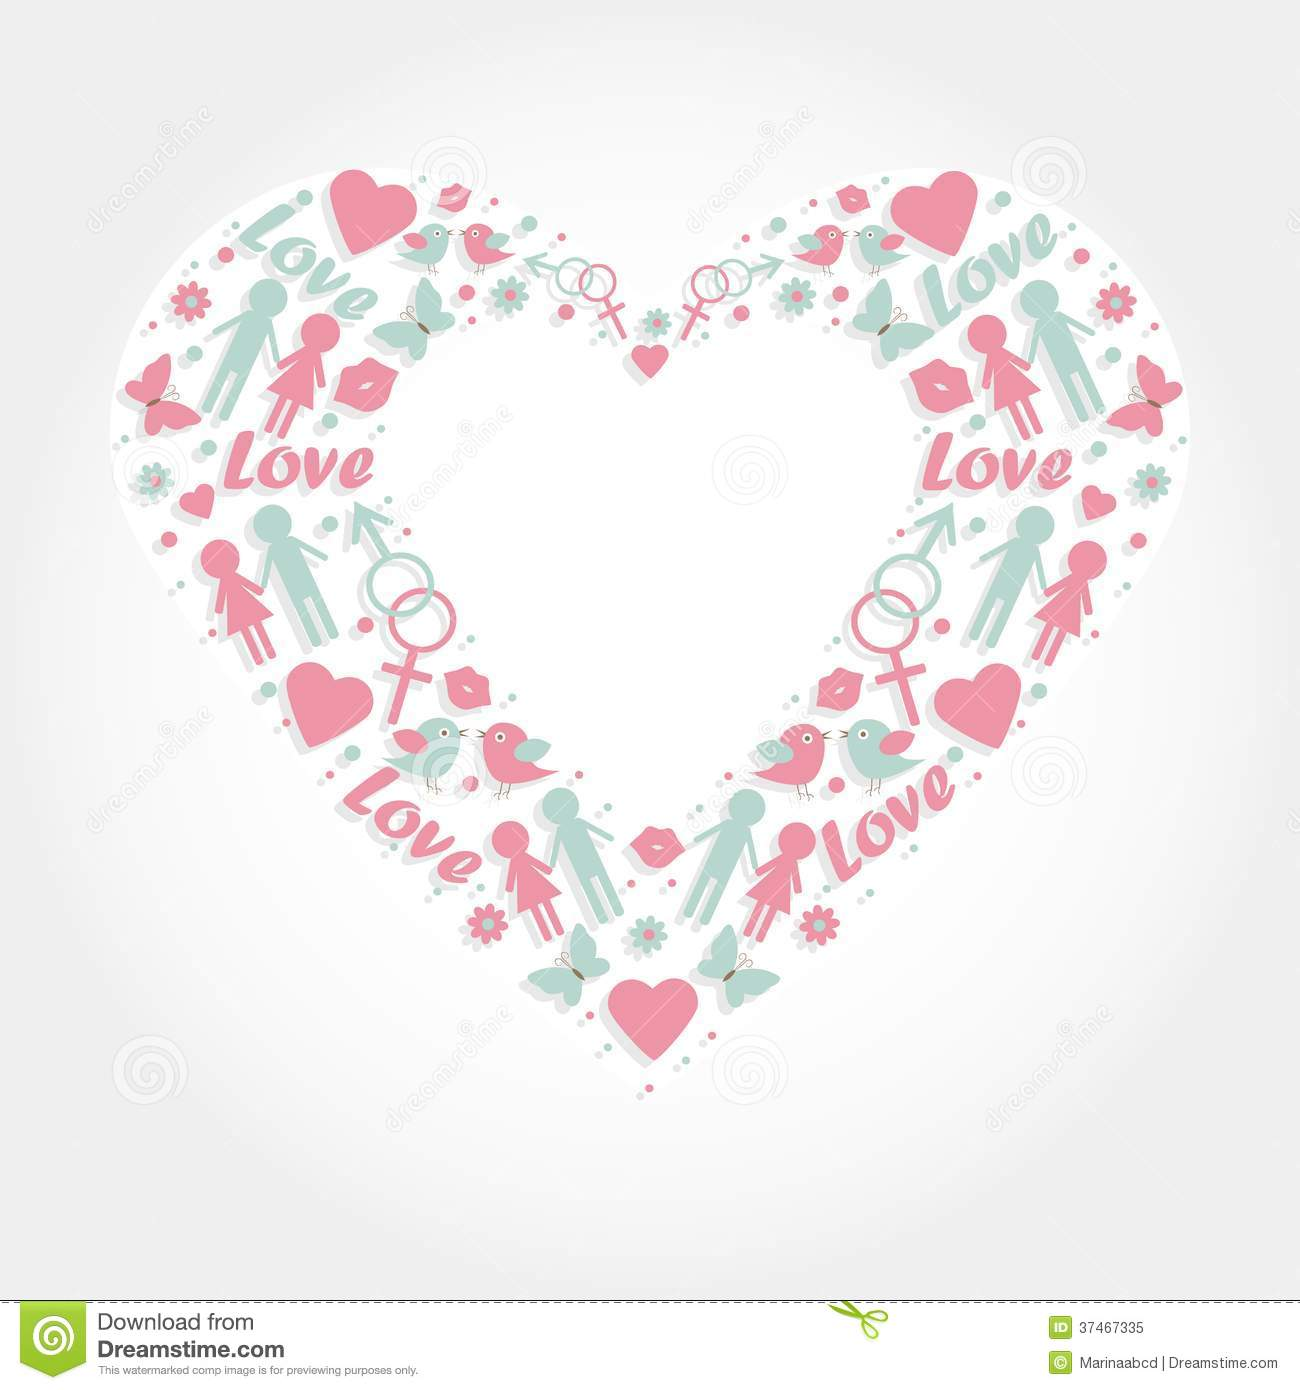 Heart with love symbols stock vector illustration of love 37467335 heart with love symbols biocorpaavc Image collections